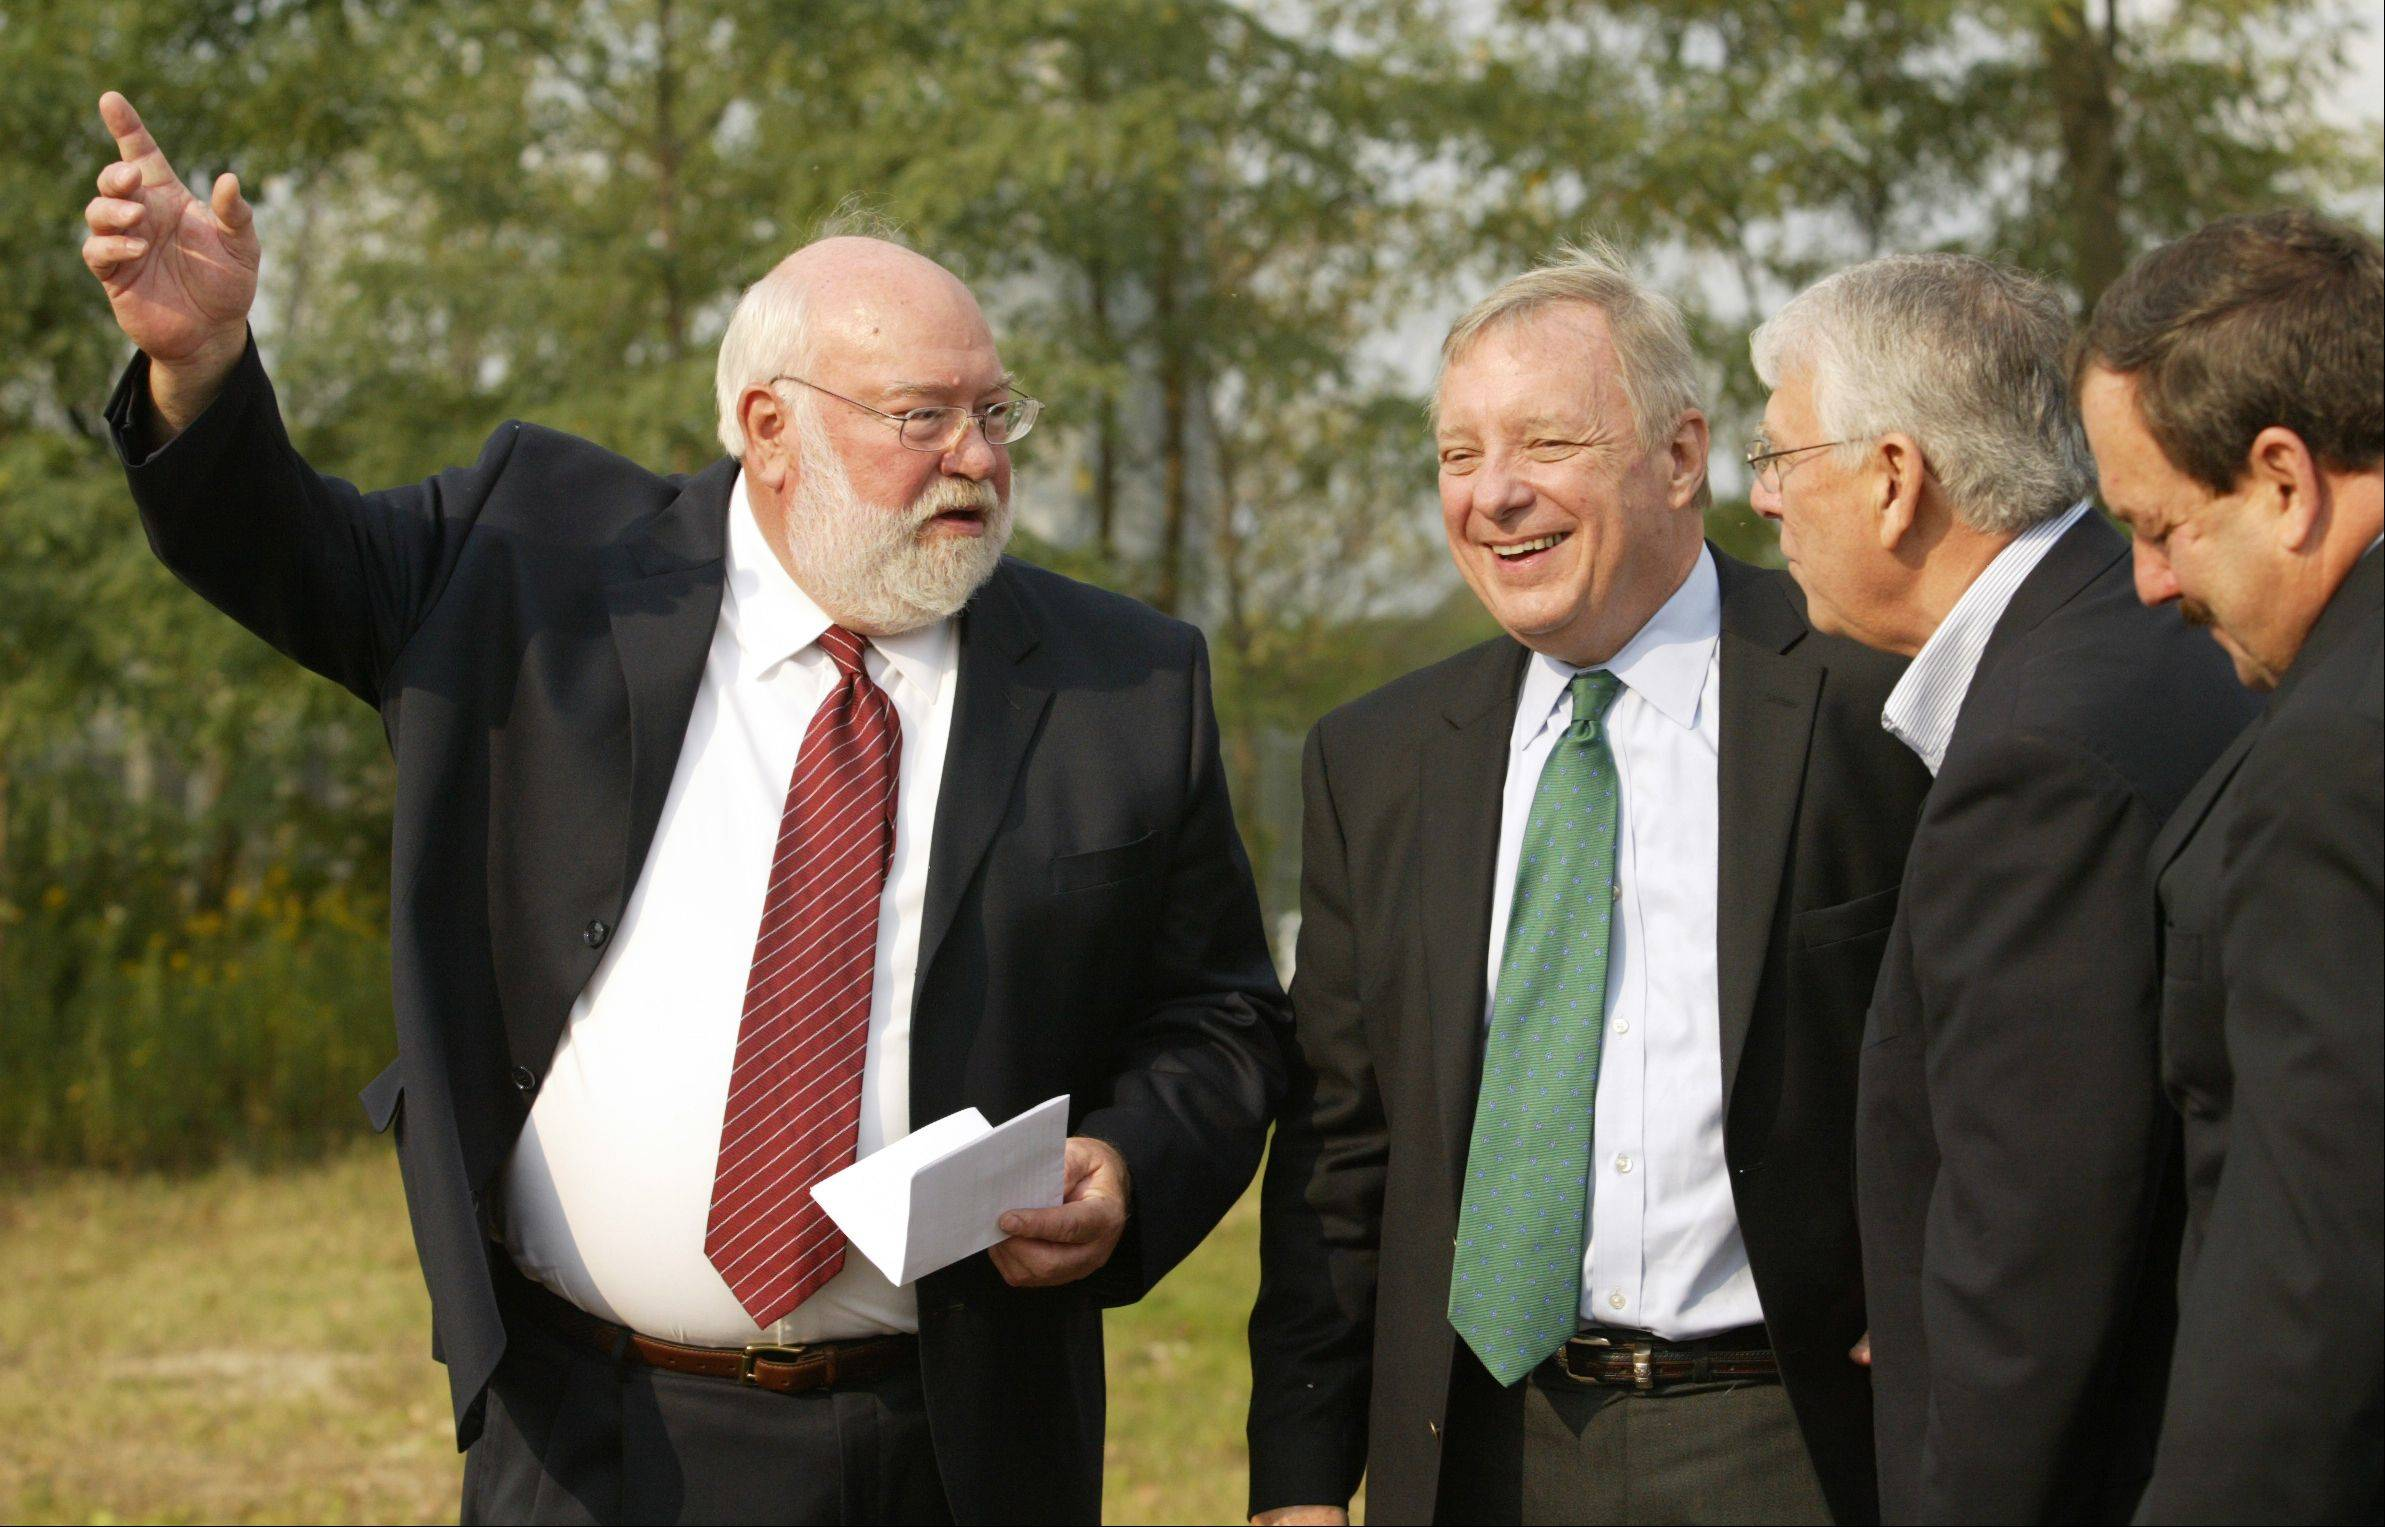 Algonquin Village President John Schmitt, left, jokes with Sen. Dick Durbin and Rep. Don Manzullo prior to Monday's groundbreaking ceremony for the western bypass project. At far right is engineering consultant Gary Overbay.